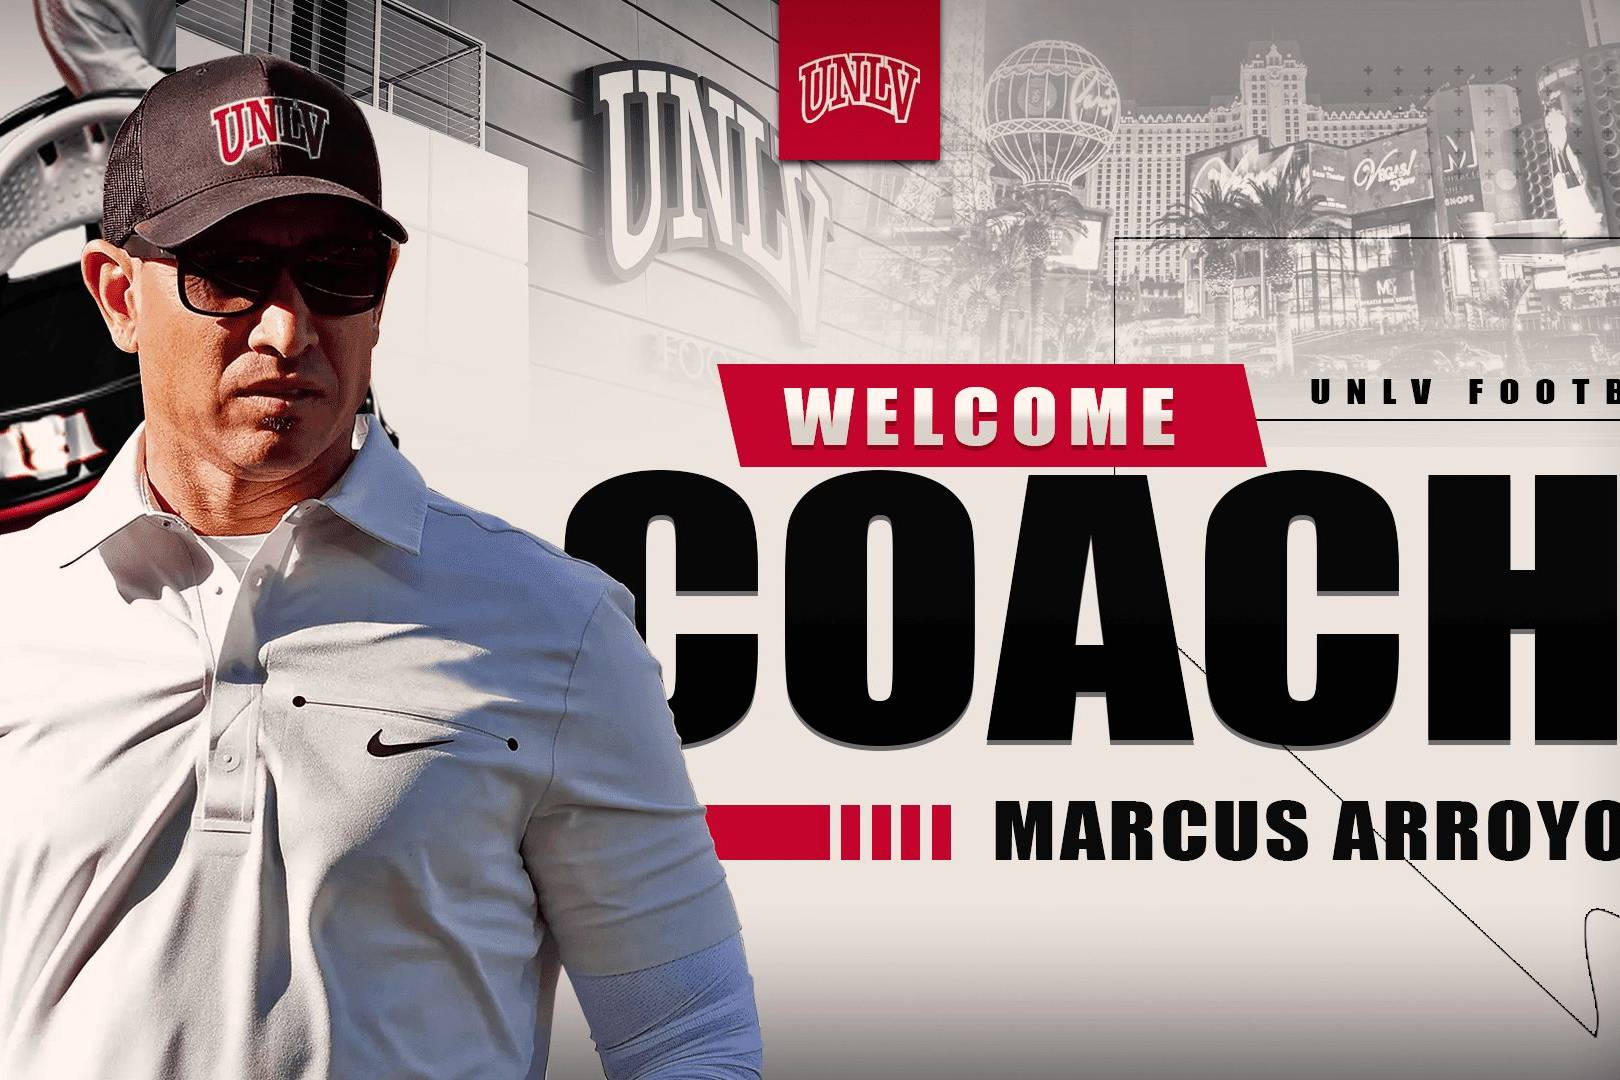 UNLV Adds Swag With Marcus Arroyo